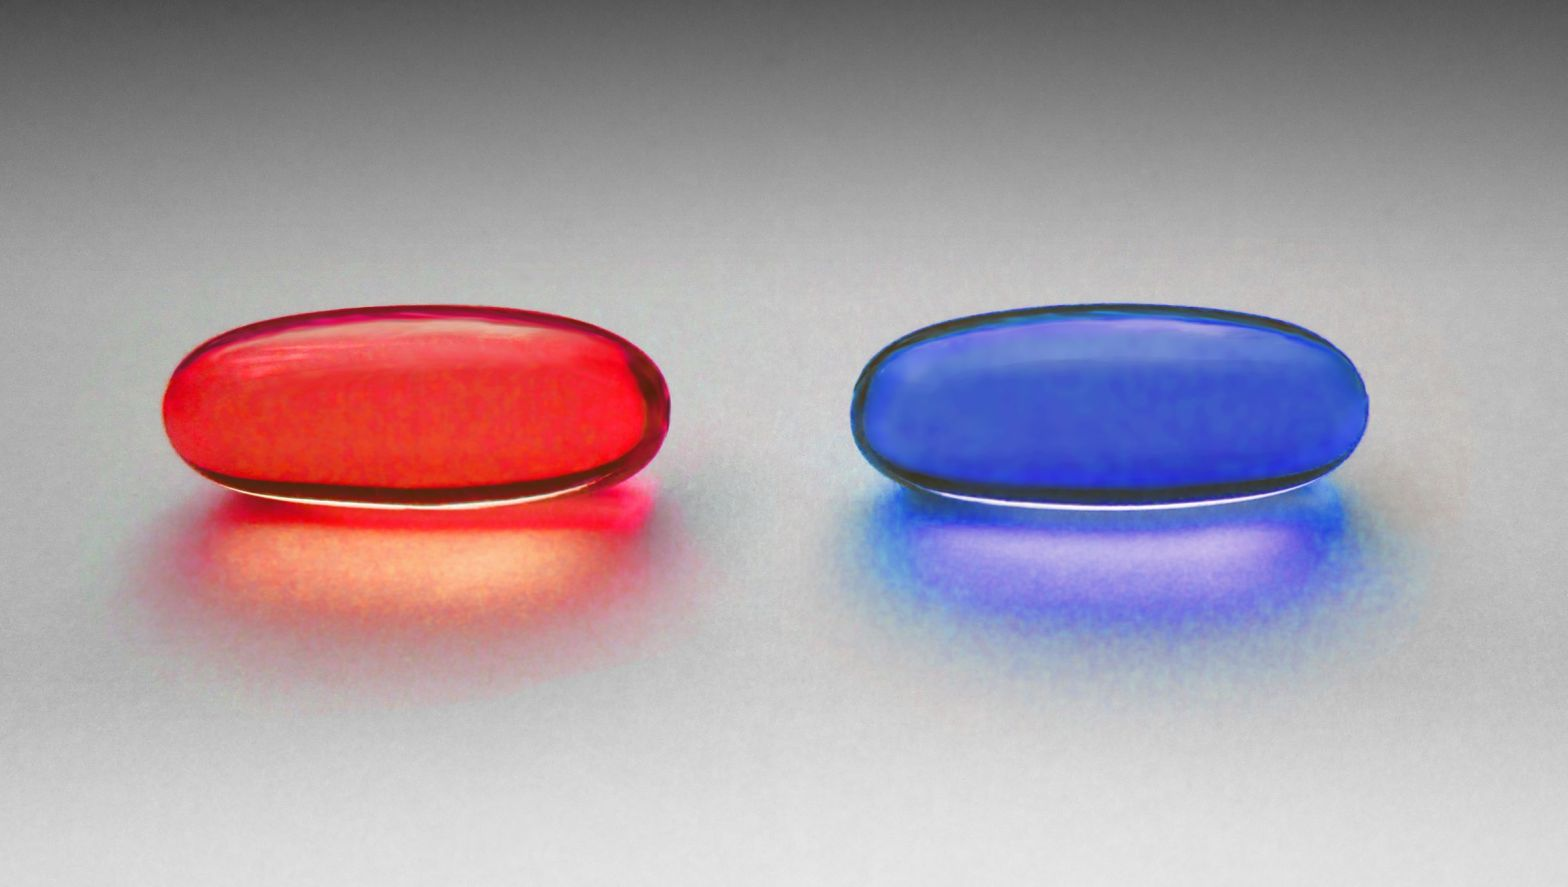 Red and blue pill. Wikimedia Commons (CC BY-SA 4.0)